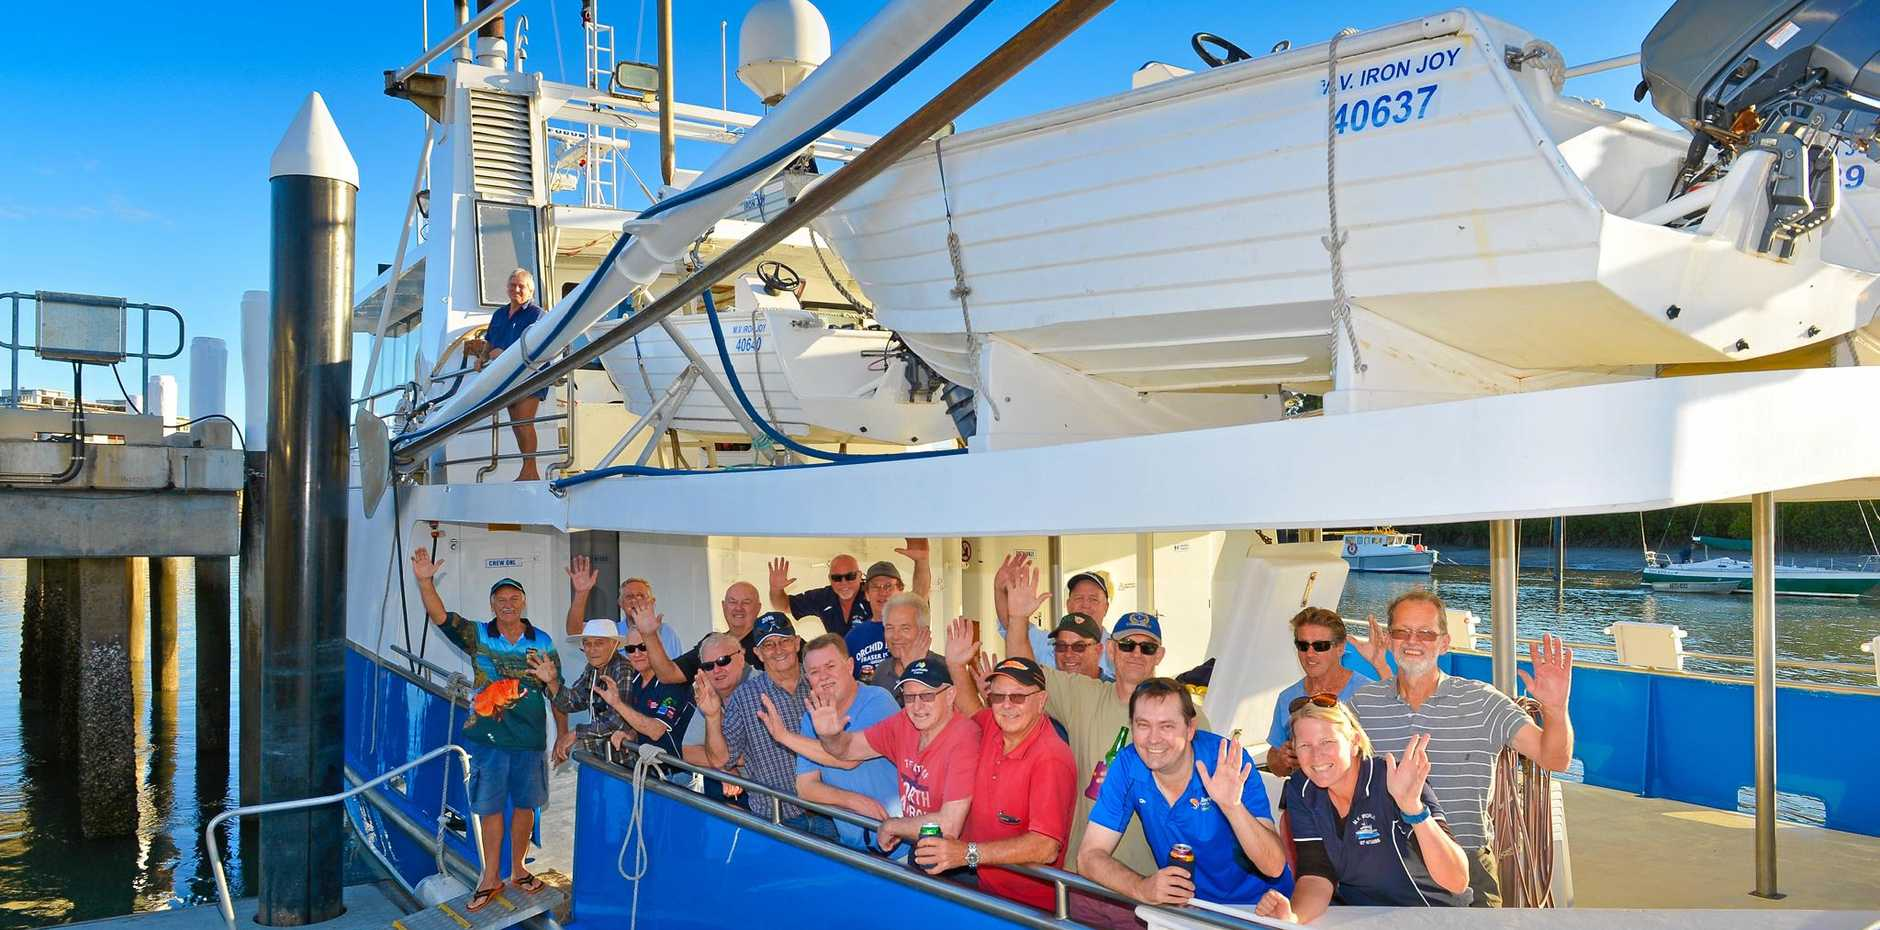 Charter business is helping the Gladstone economy. Businessmen from Brisbane about to depart on the M.V. Iron Joy.